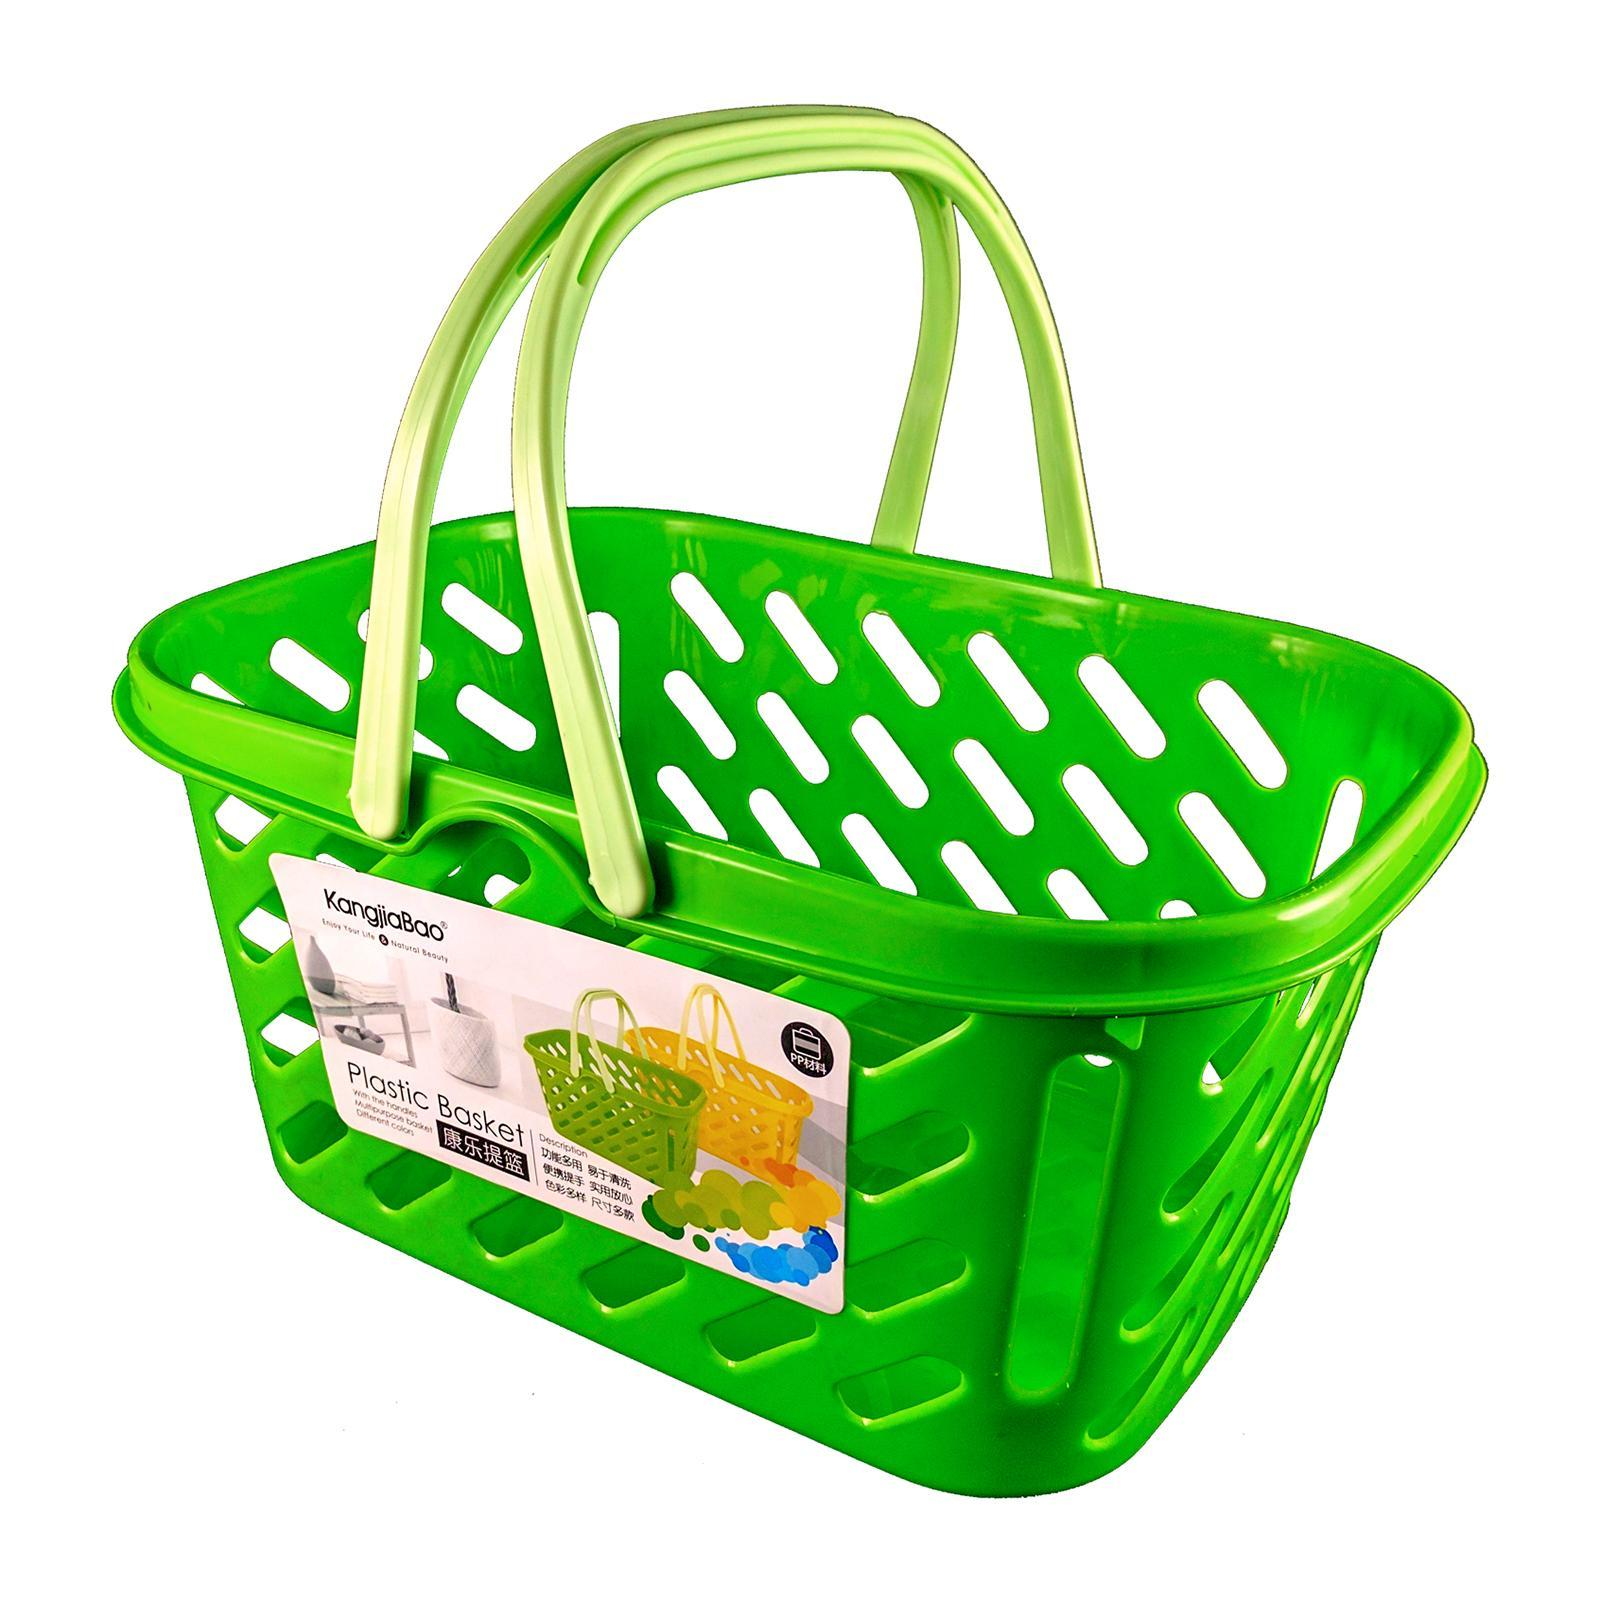 KangjiaBao Medium Plastic Multipurpose Basket With Handles 30.5x21x14.5 Cm (Green)